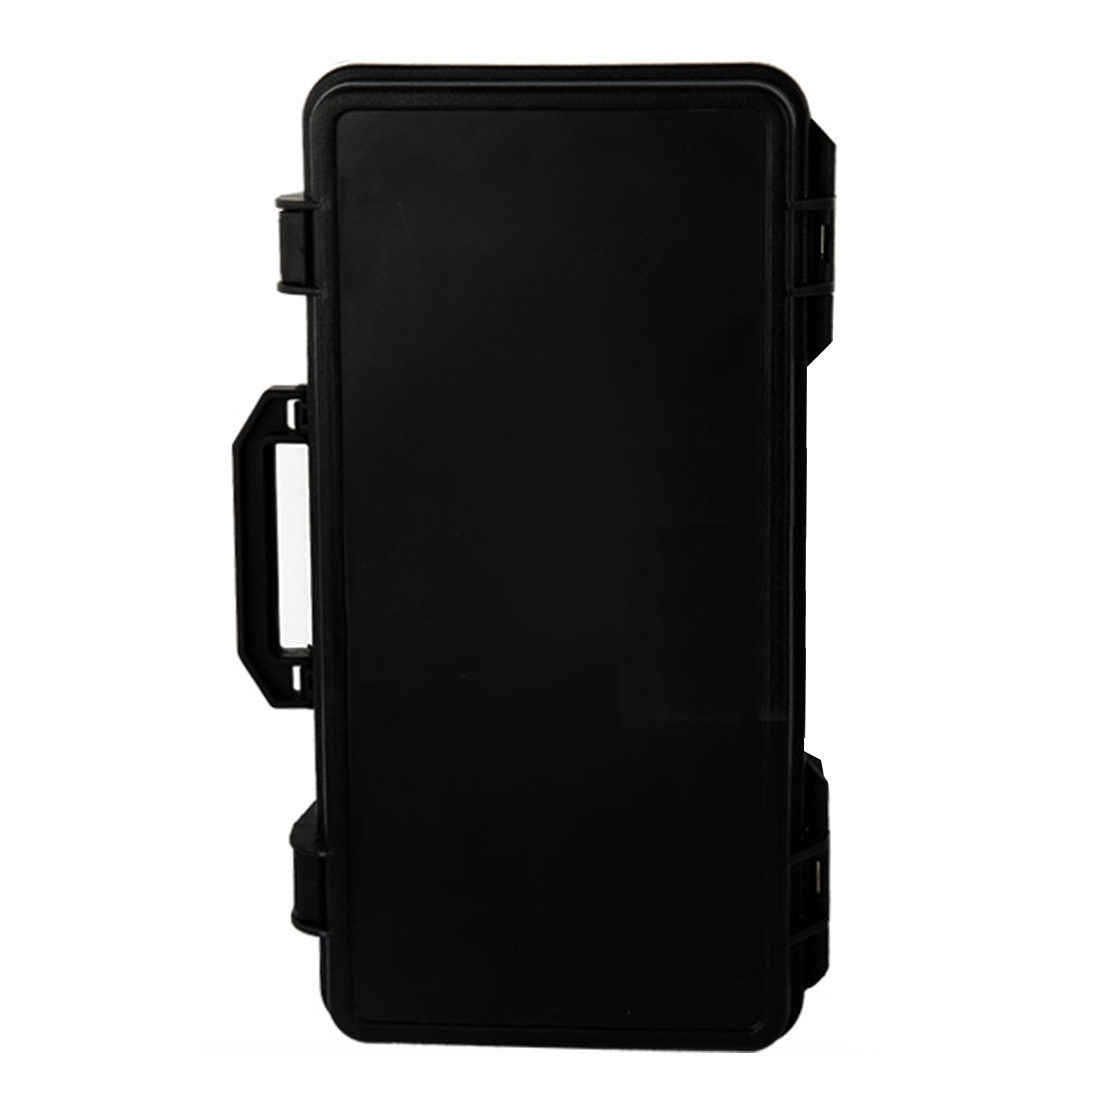 F18679 DIY Universal Protective Storage Case Cover for  OSMO Zhiyun Gimbal Bag Z1-Evolution z1 Smooth c Z1 Pround Z1-Rider2 spark storage bag portable carrying case storage box for spark drone accessories can put remote control battery and other parts